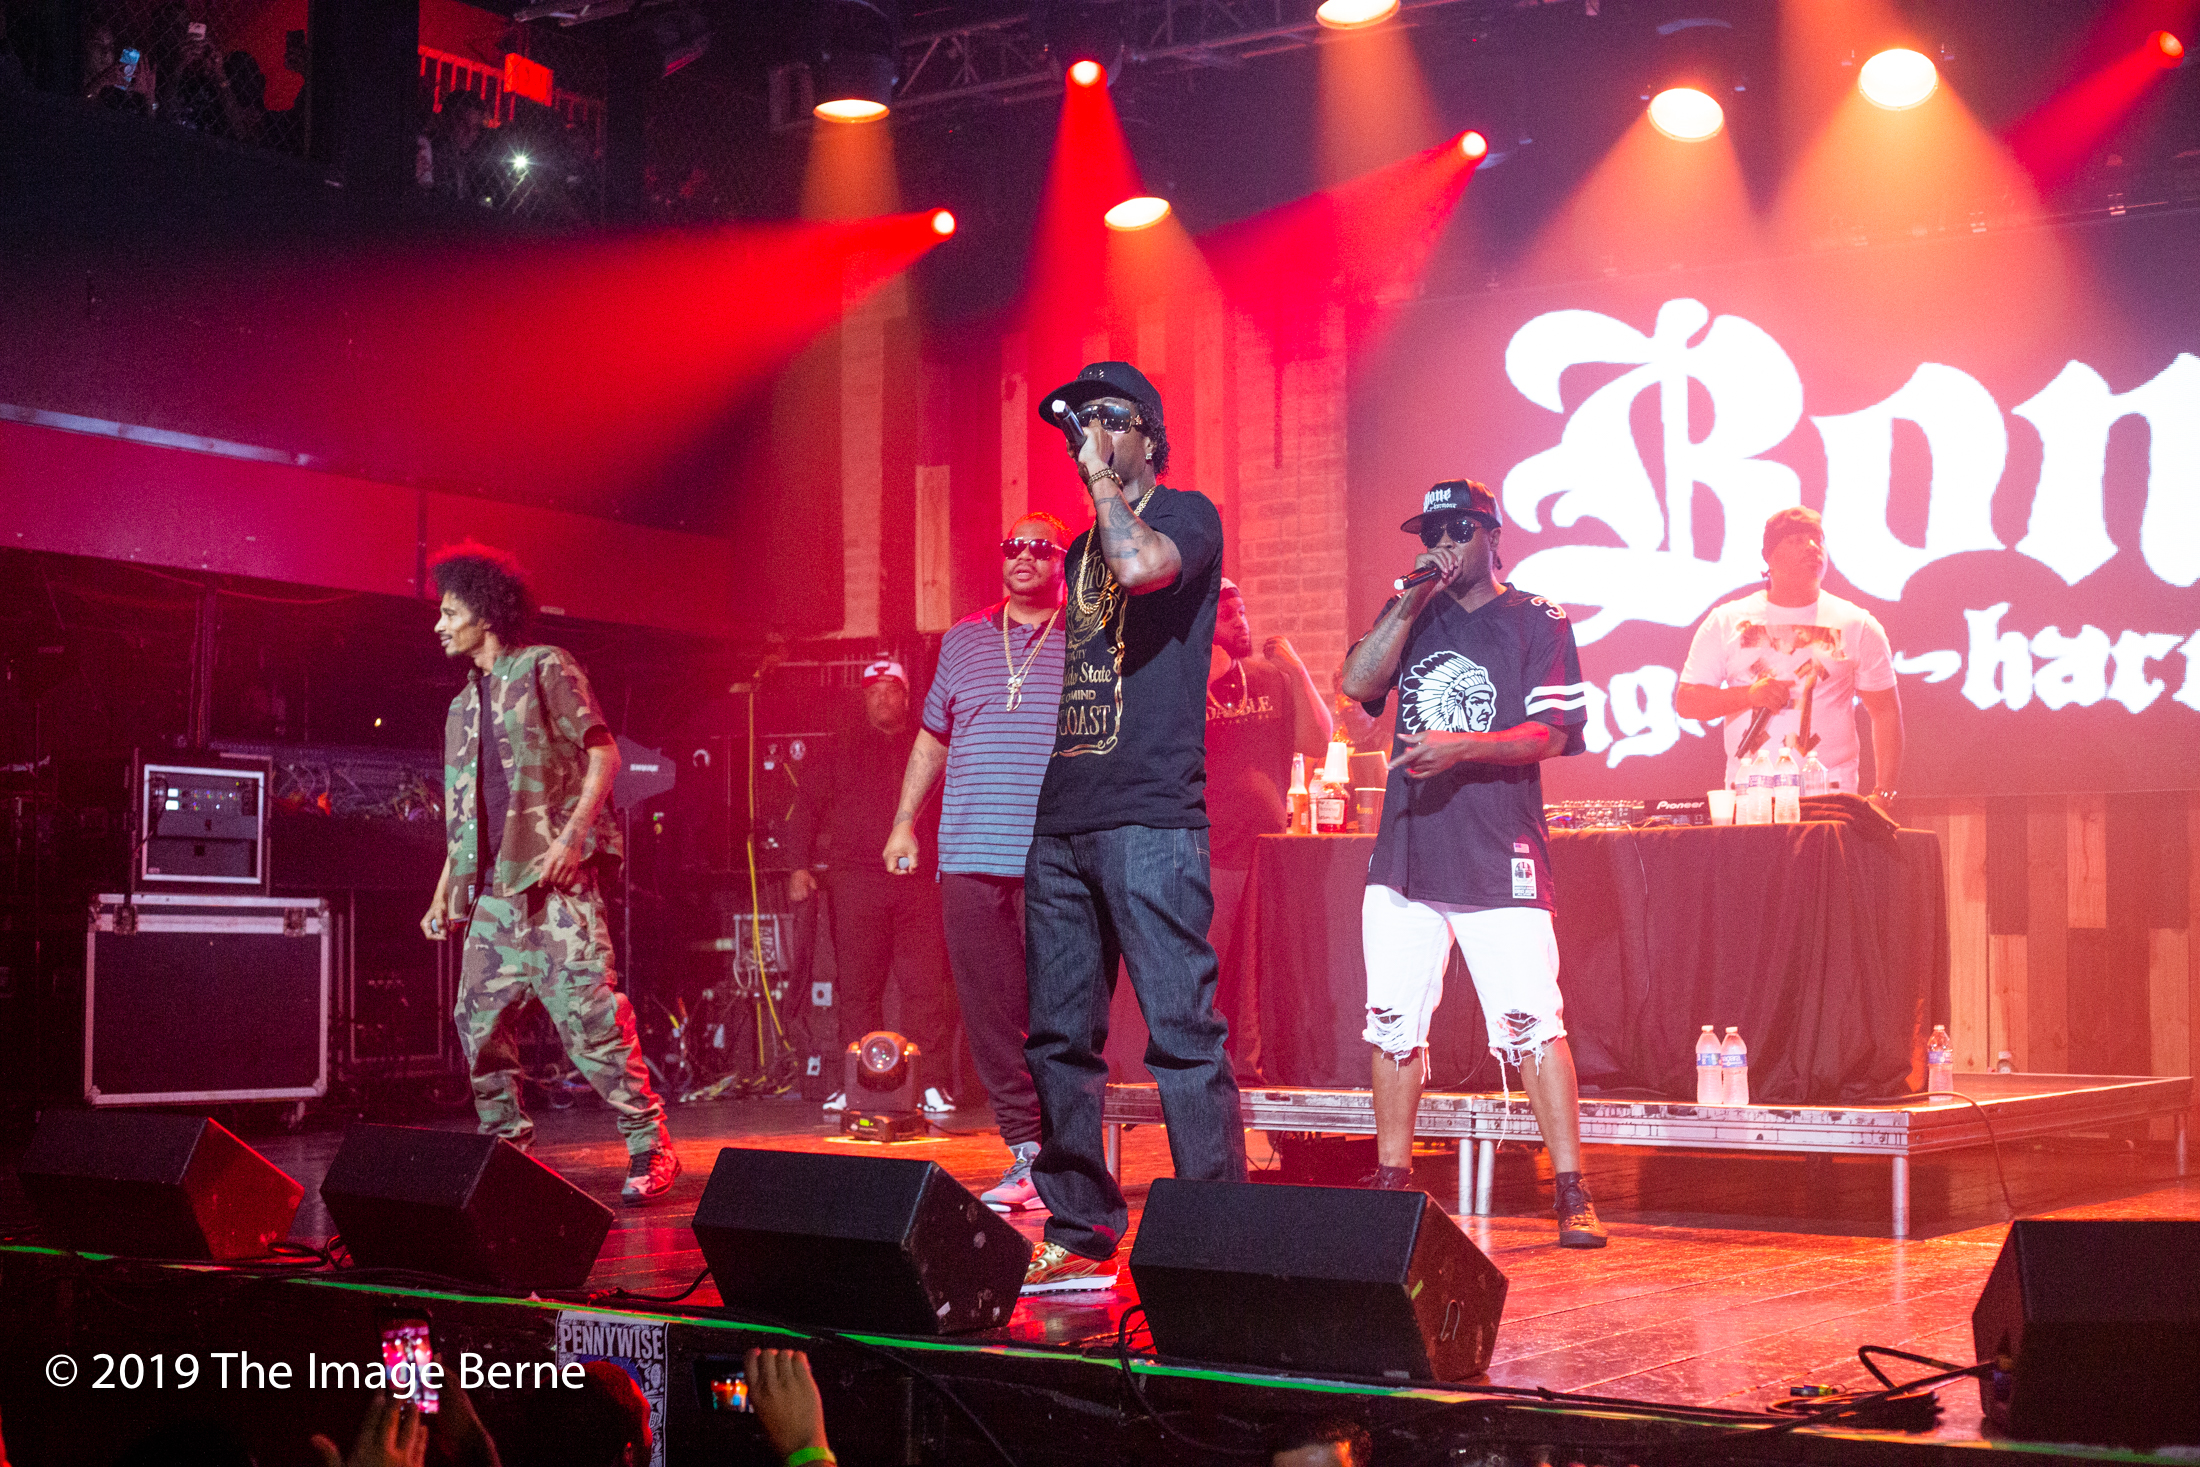 Krayzie Bone, Wish Bone, Flesh-N-Bone, Layzie Bone, and Bizzy Bone-059.jpg